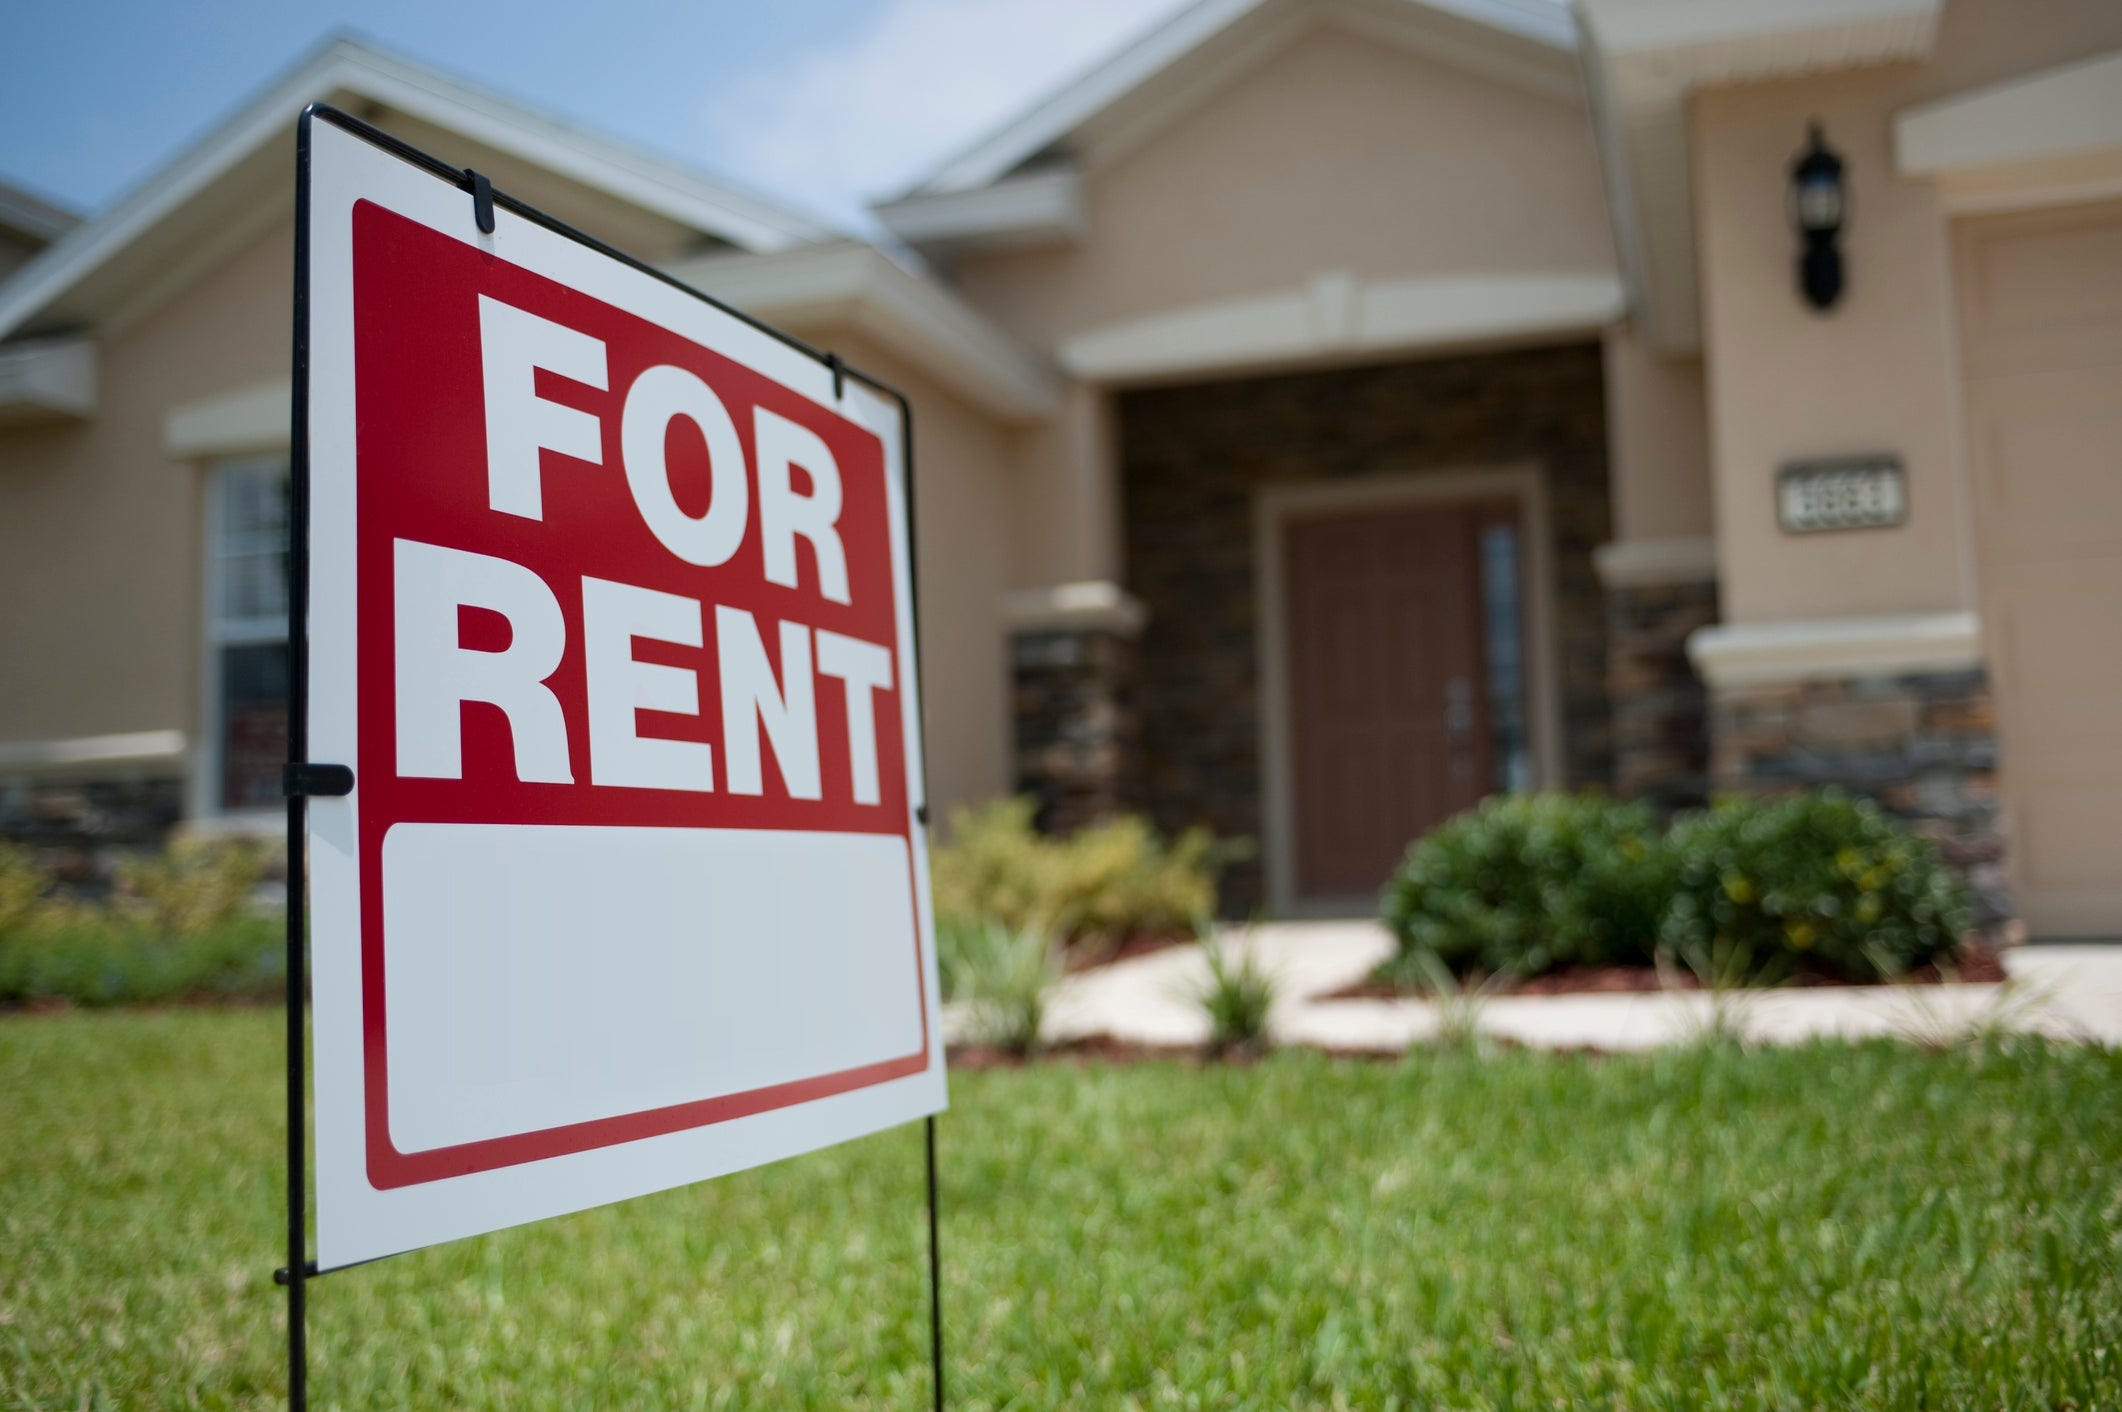 Landlords offer lease deals, discounts amid COVID